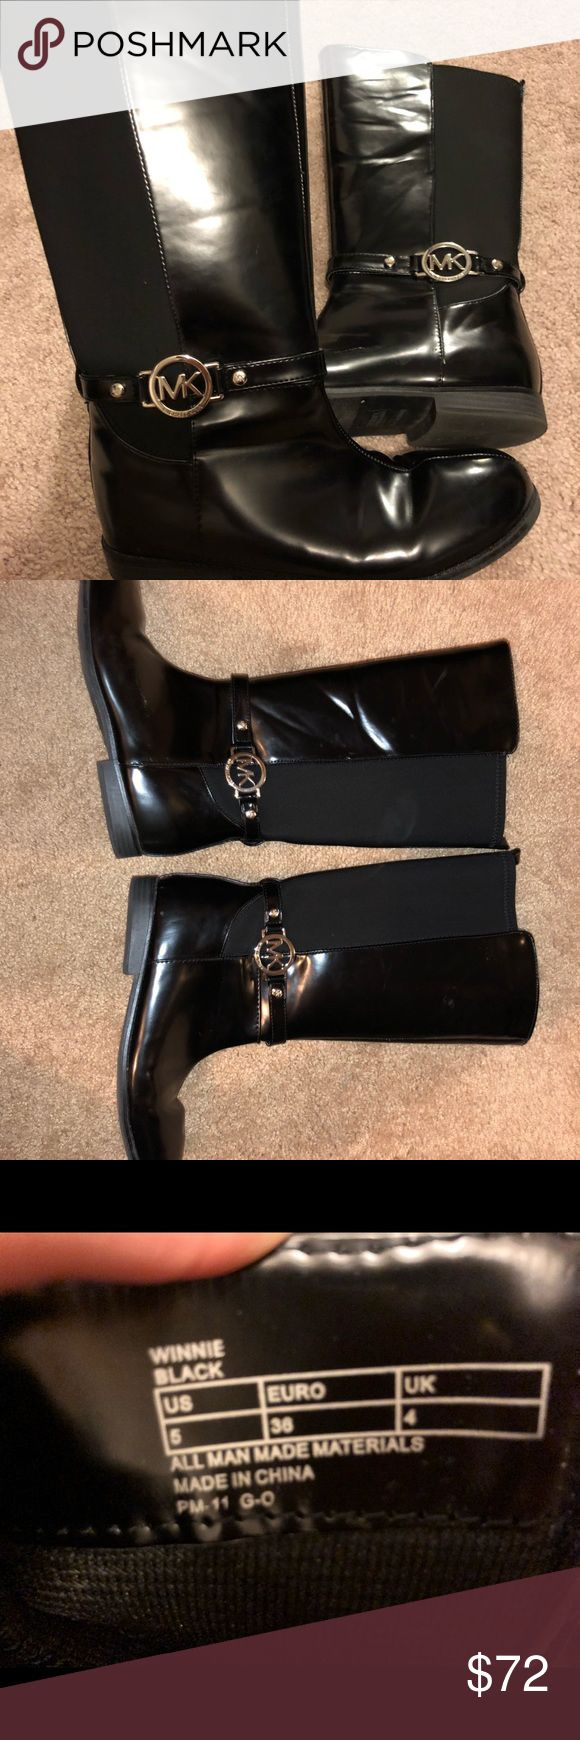 """Authentic MK Boots! MAKE AN OFFER! These boots have been worn and have small scuffs on the inner side; The scuffs can be fixed with shoe polish easily but I rather just give them away! They are a """"5""""but can be worn by 5 or 6! Offer away!! Michael Kors Shoes Heeled Boots"""